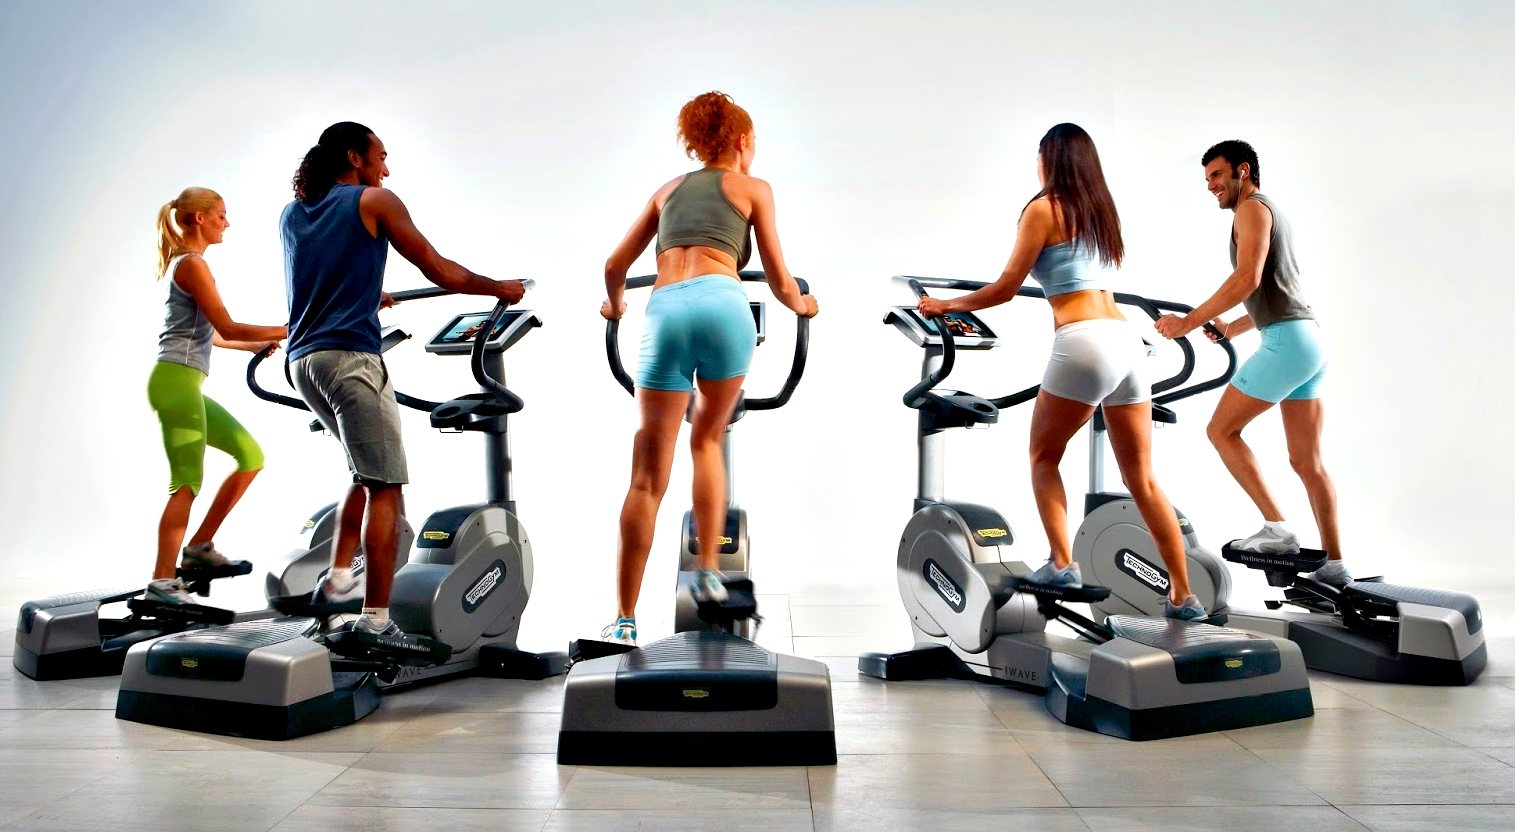 folks working on elliptical trainers with back problems